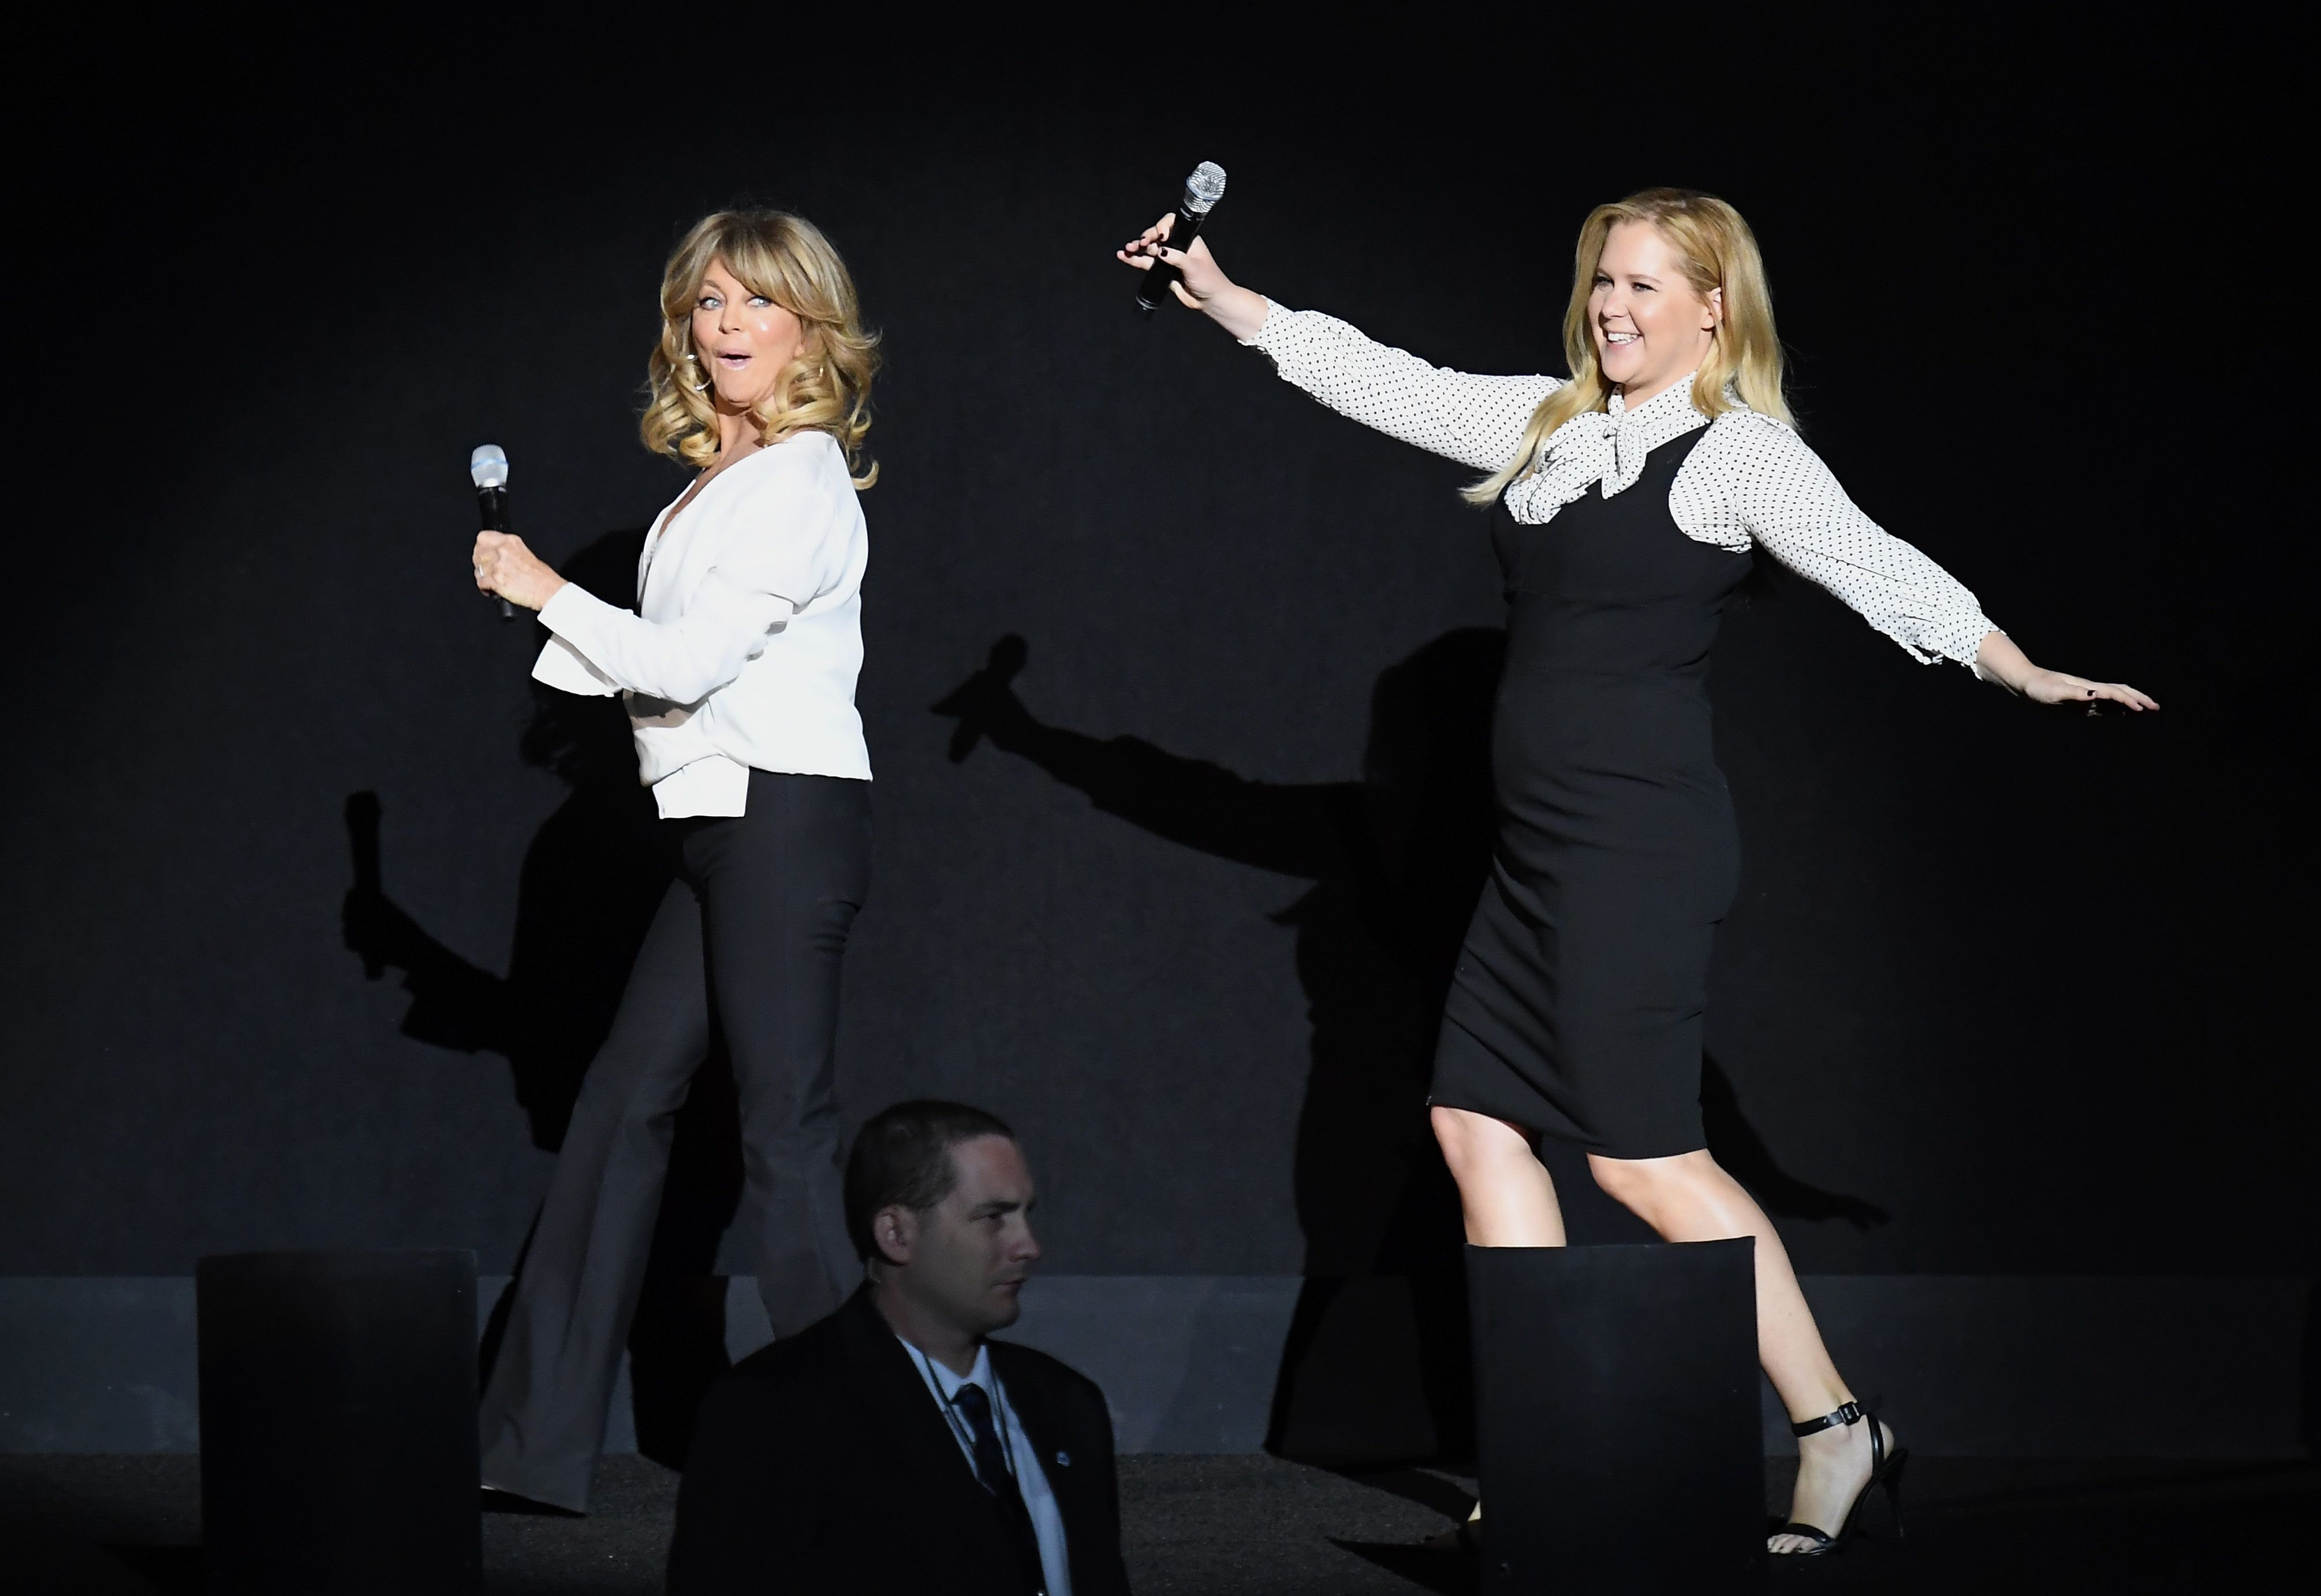 Actors Goldie Hawn and Amy Schumer speak onstage at CinemaCon 2017 20th Century Fox Invites You to a Special Presentation Highlighting Its Future Release Schedule at The Colosseum at Caesars Palace during CinemaCon on March 30, 2017 in Las Vegas, Nevada. / AFP PHOTO / ANGELA WEISS        (Photo credit should read ANGELA WEISS/AFP/Getty Images)